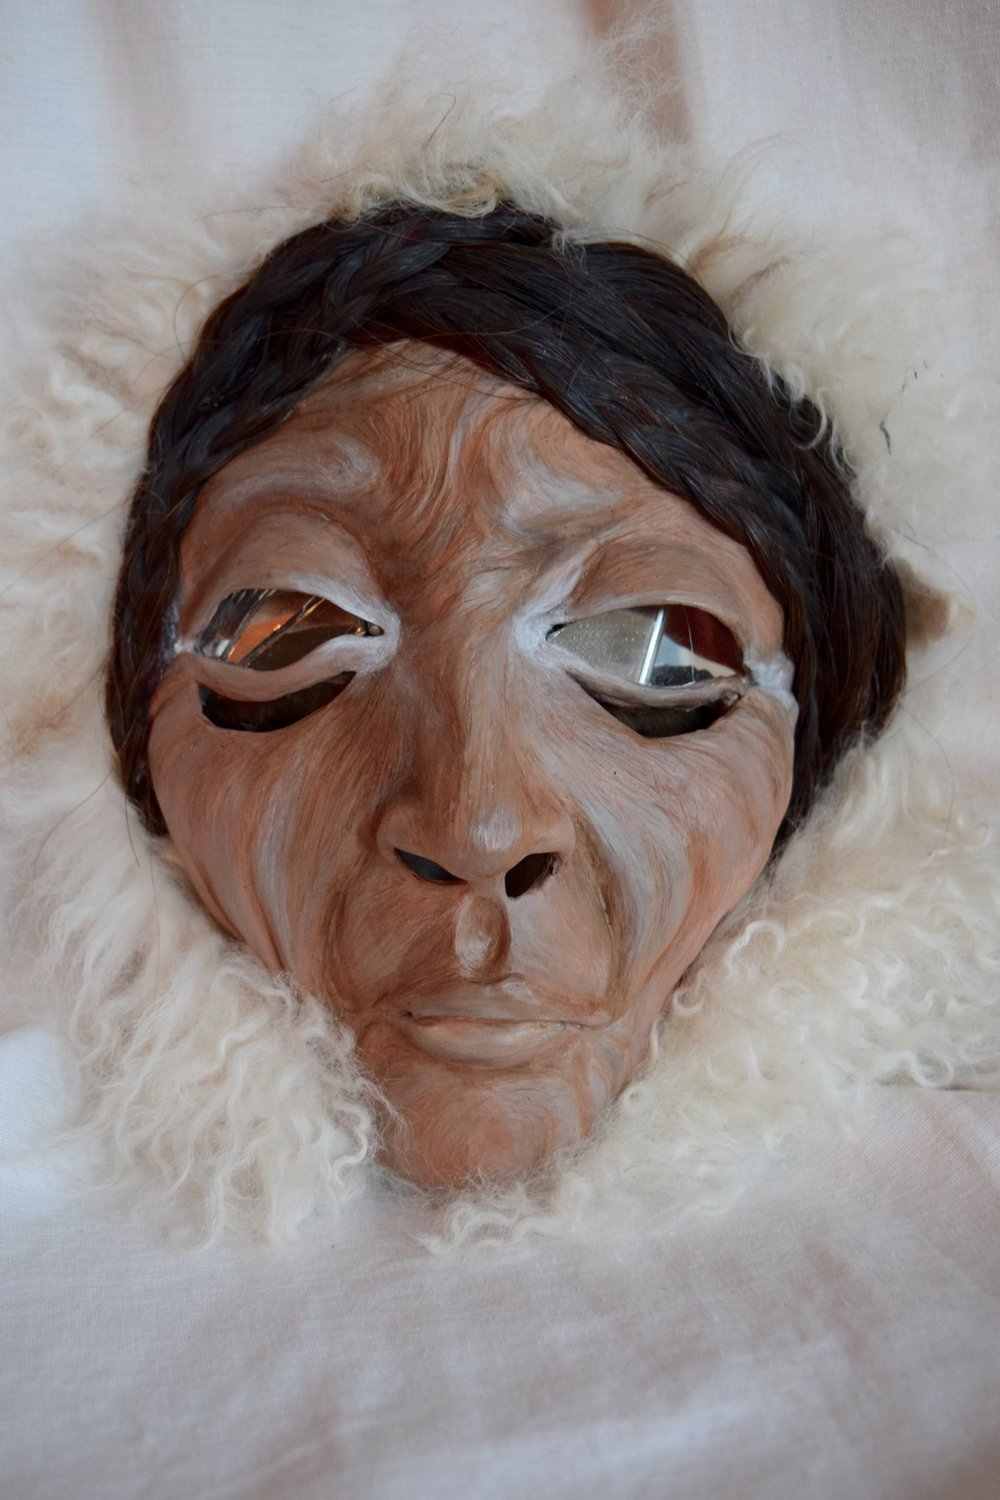 Winter Queen, 2015. Clay, Mongolian sheep hide, horse hair, mirror, acrylic